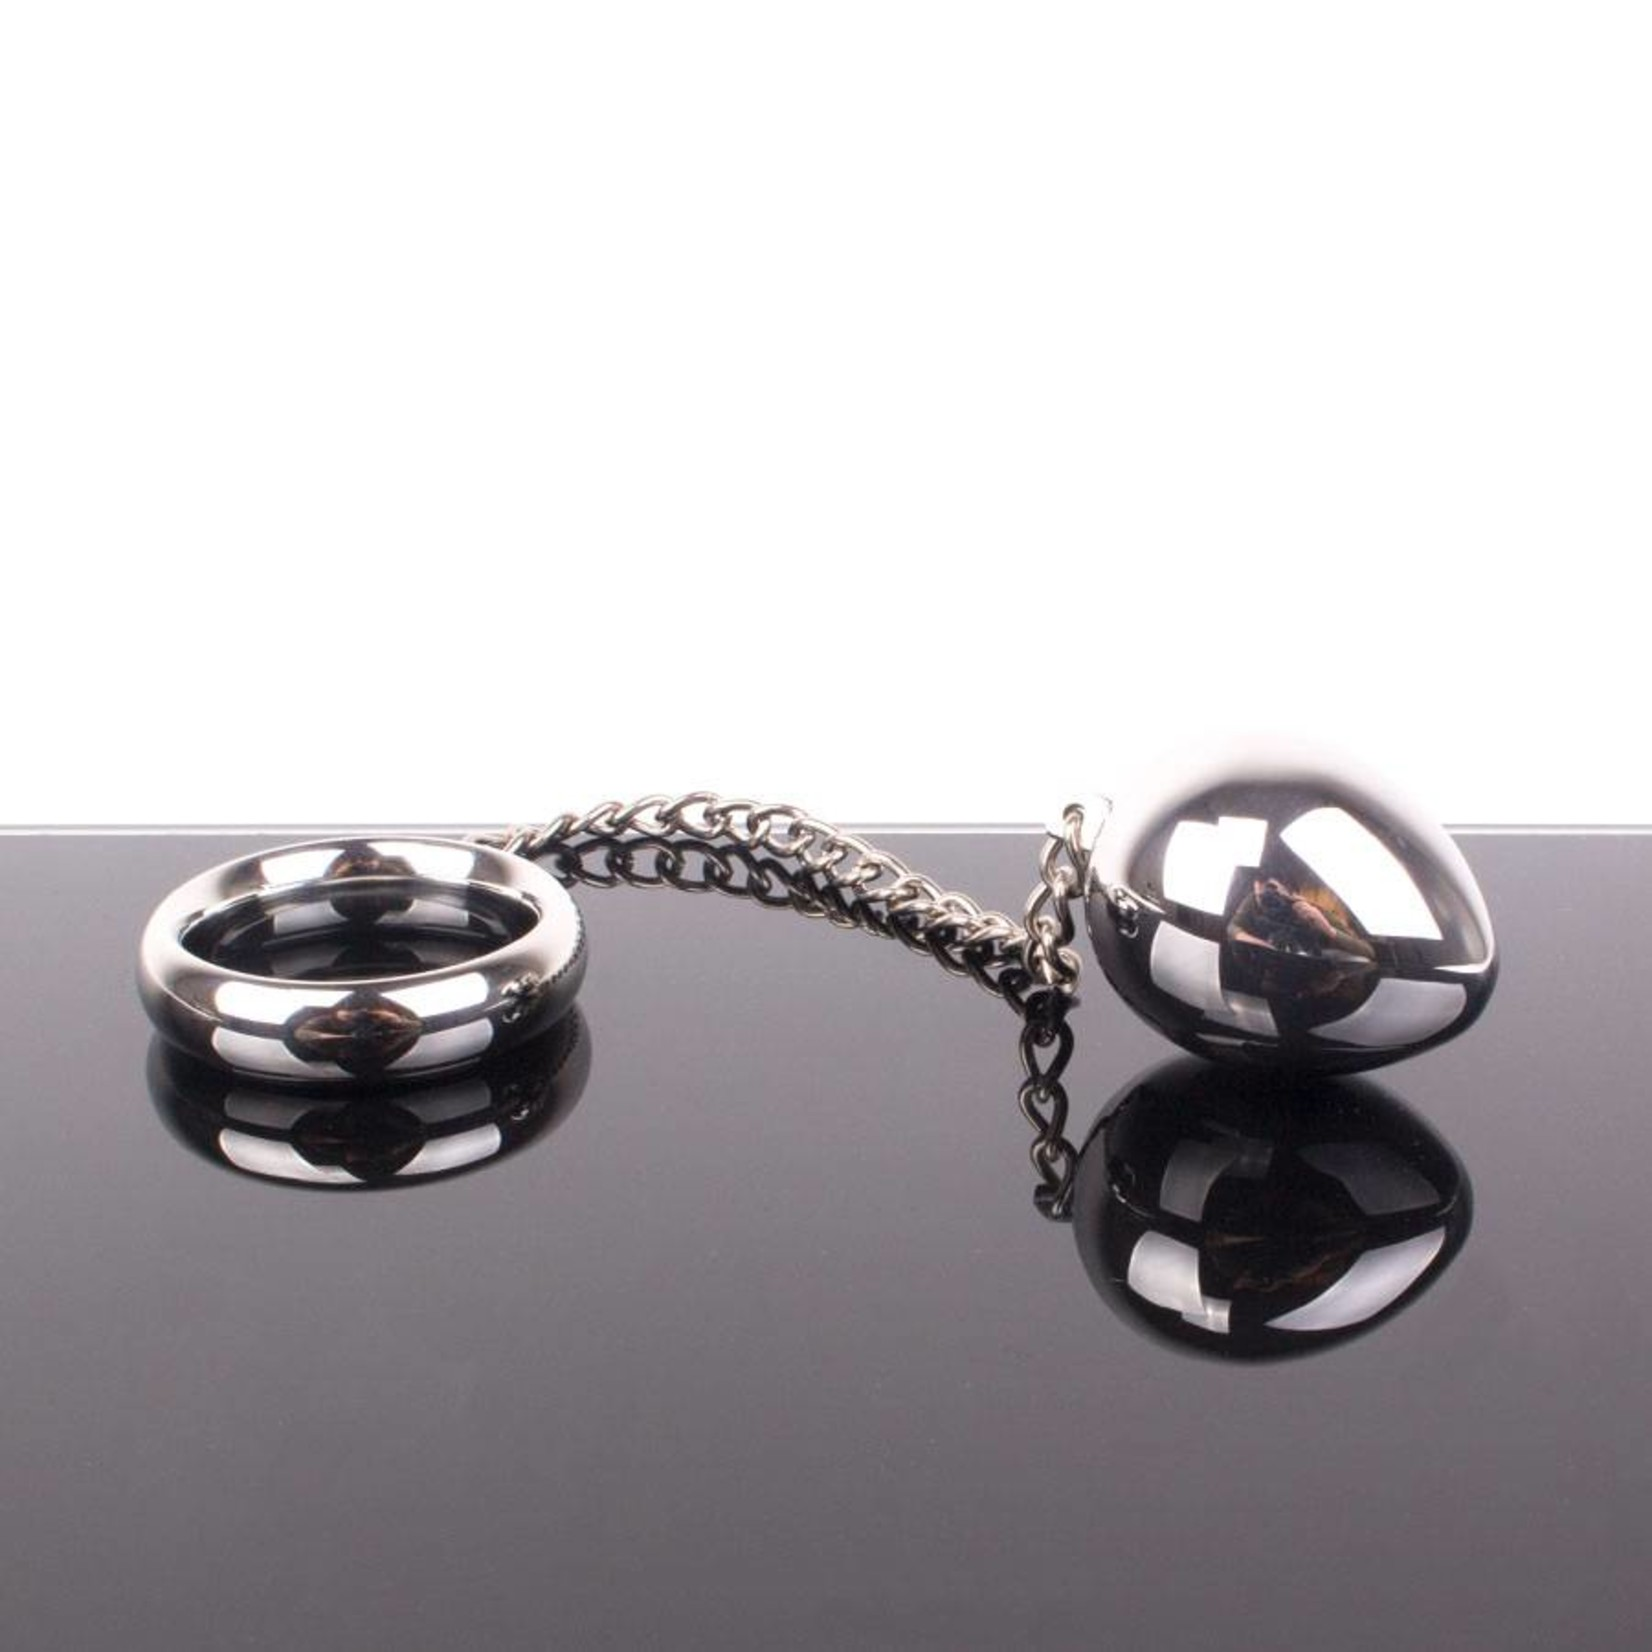 KIOTOS Steel Donut C-Ring Anal Egg with Chain 50x50